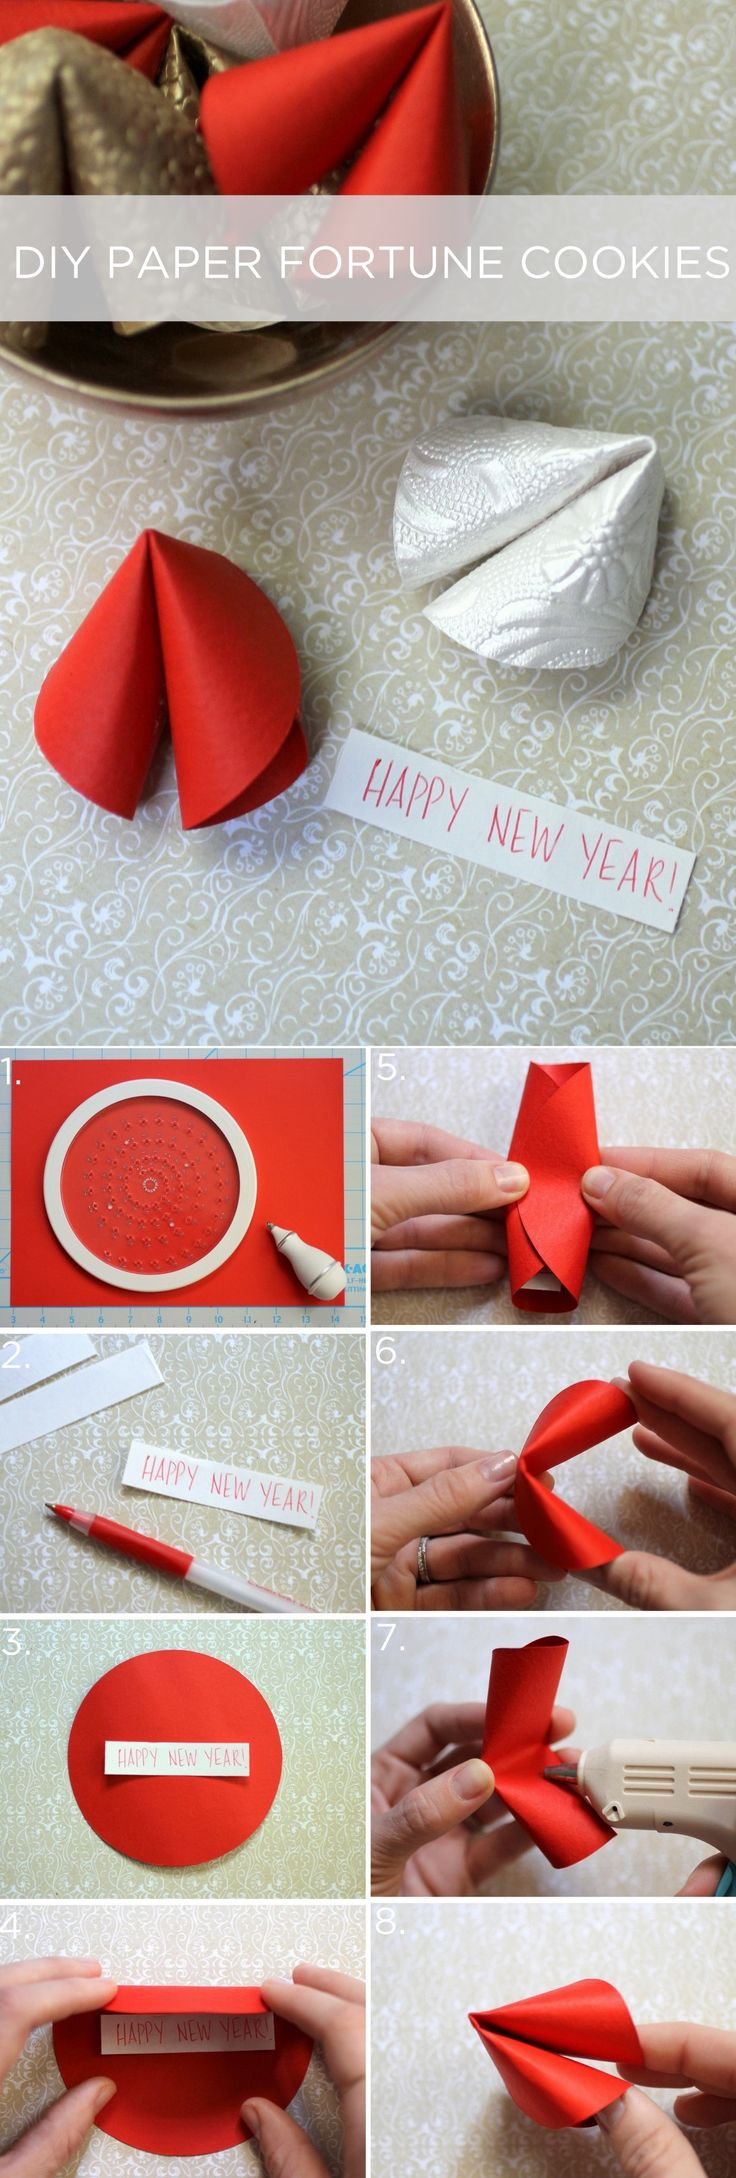 Chinese New Year #DIY fortune cookie favors. #EviteGatherings Glücks kekse basteln